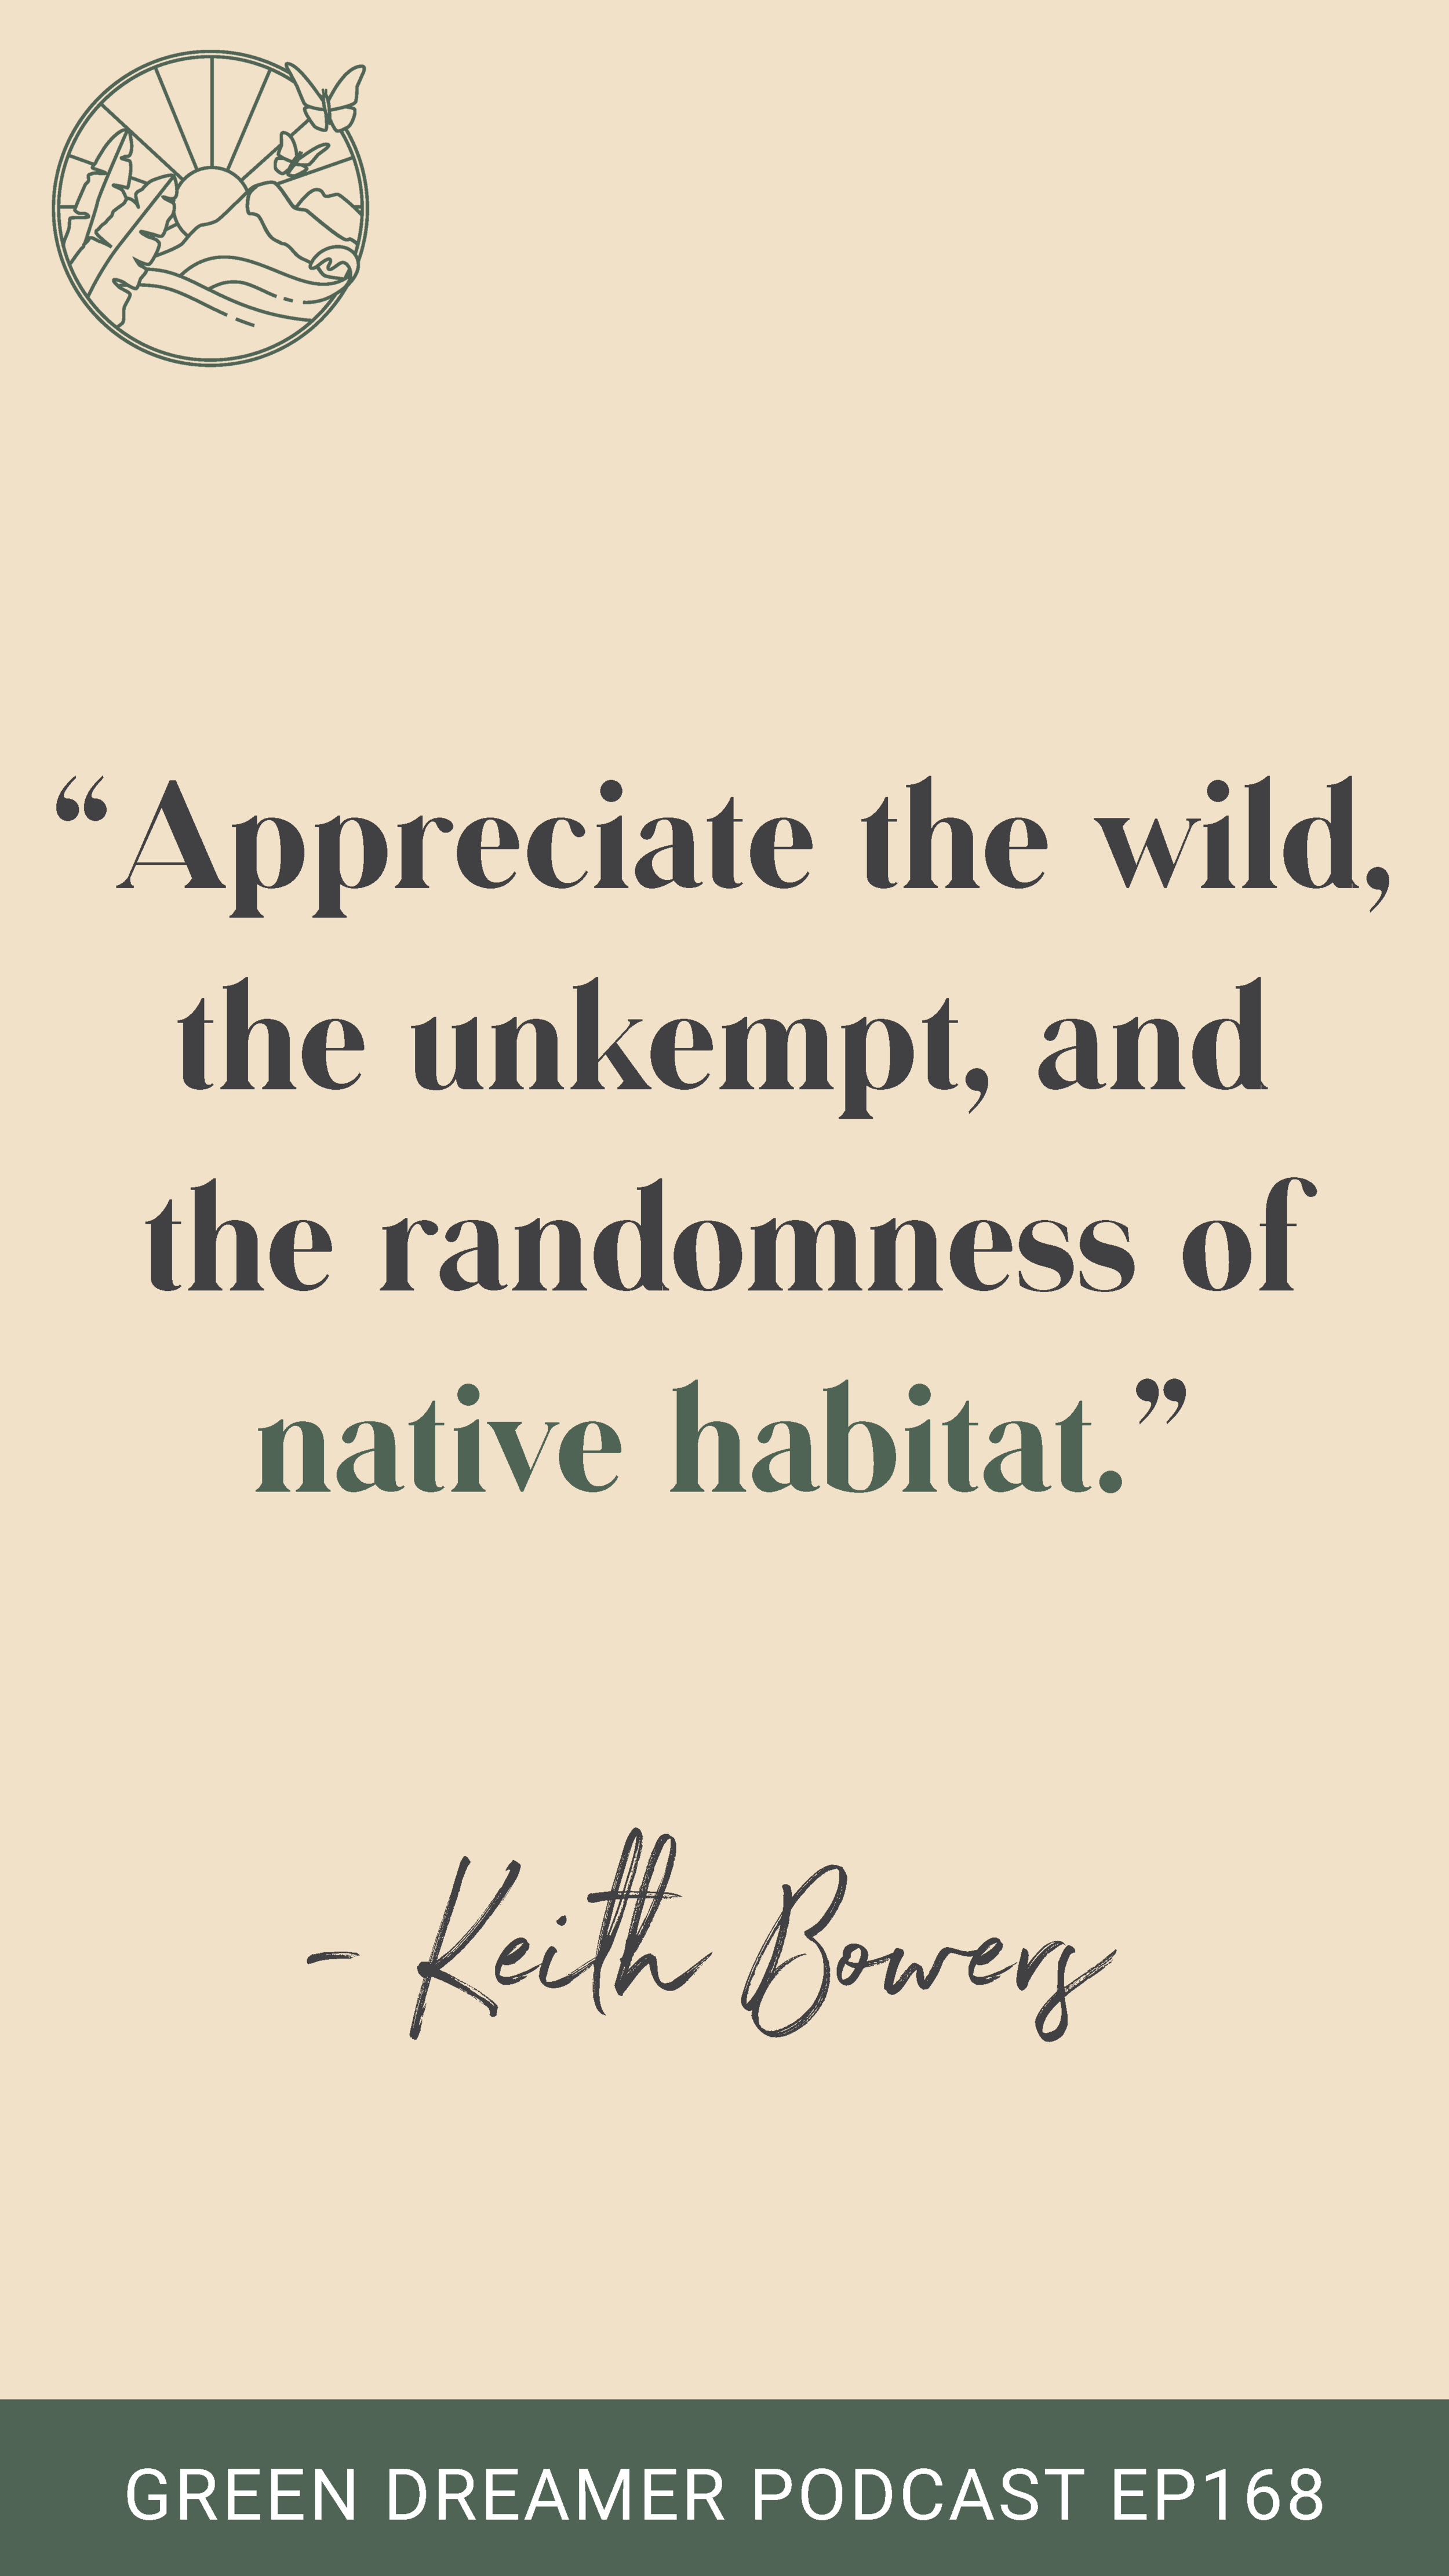 Rewilding quote - Green Dreamer Podcast